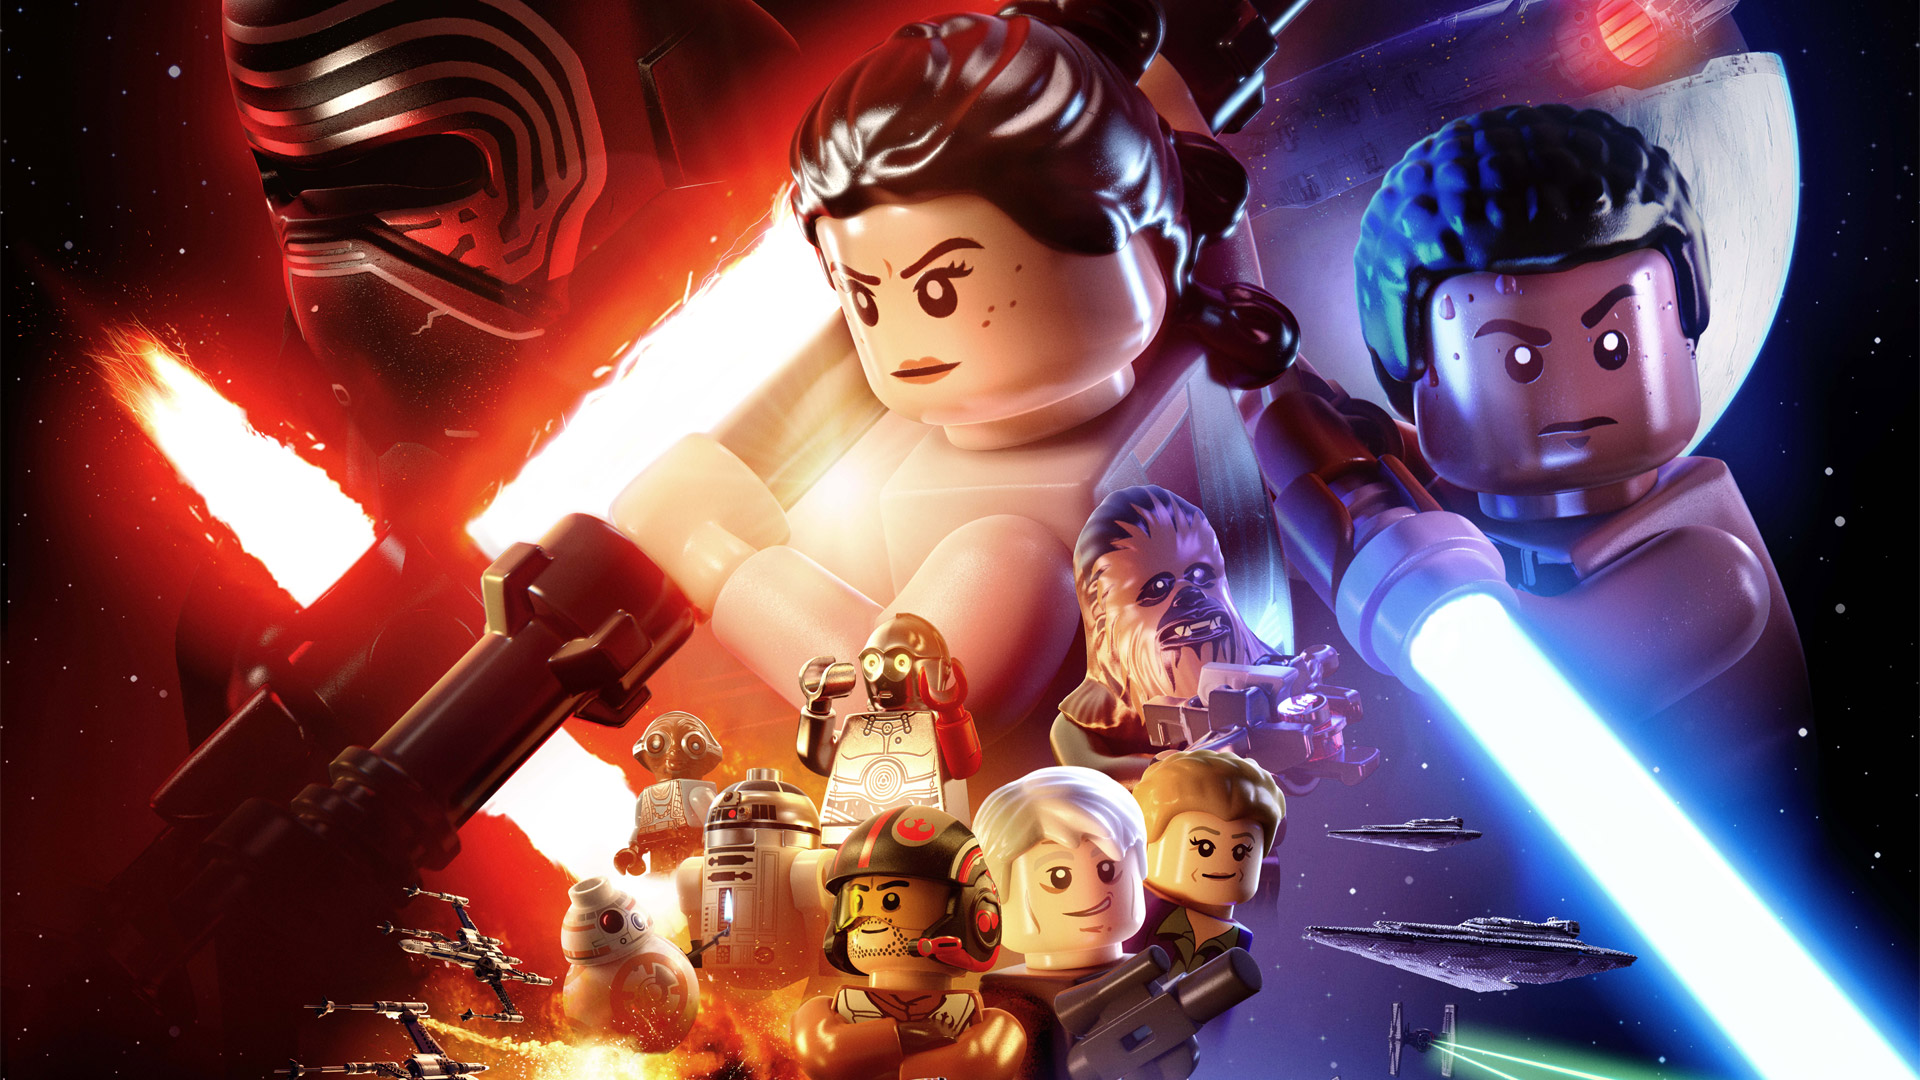 Free Lego Star Wars: The Force Awakens Wallpaper in 1920x1080